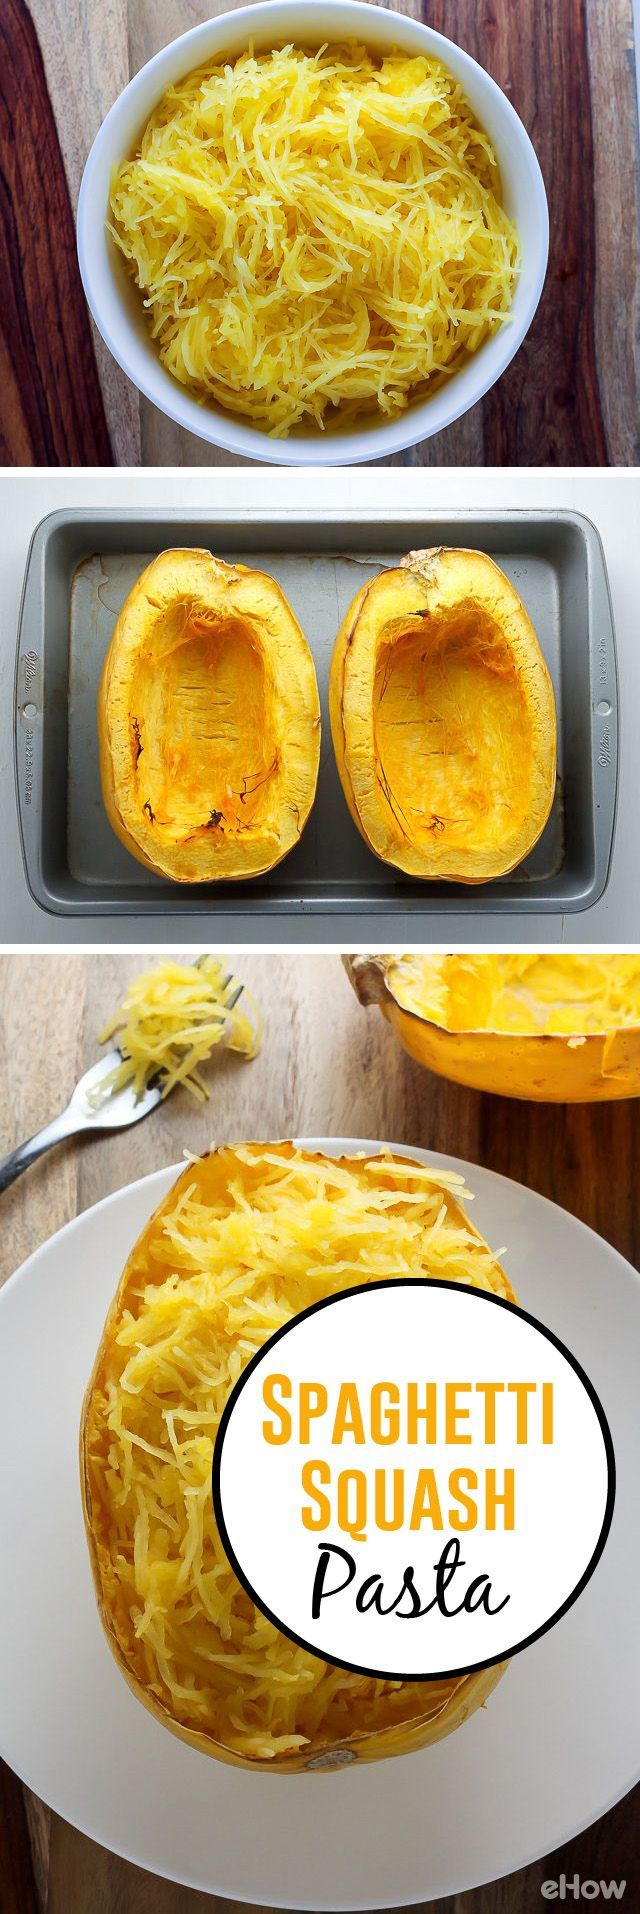 Learn how to make this great pasta-substitute! It's so easy and this low-carb option tastes great! Get the instructions and the recipe here: http://www.ehow.com/how_8139855_shred-spaghetti-squash.html?utm_source=pinterest.com&utm_medium=referral&utm_content=freestyle&utm_campaign=fanpage